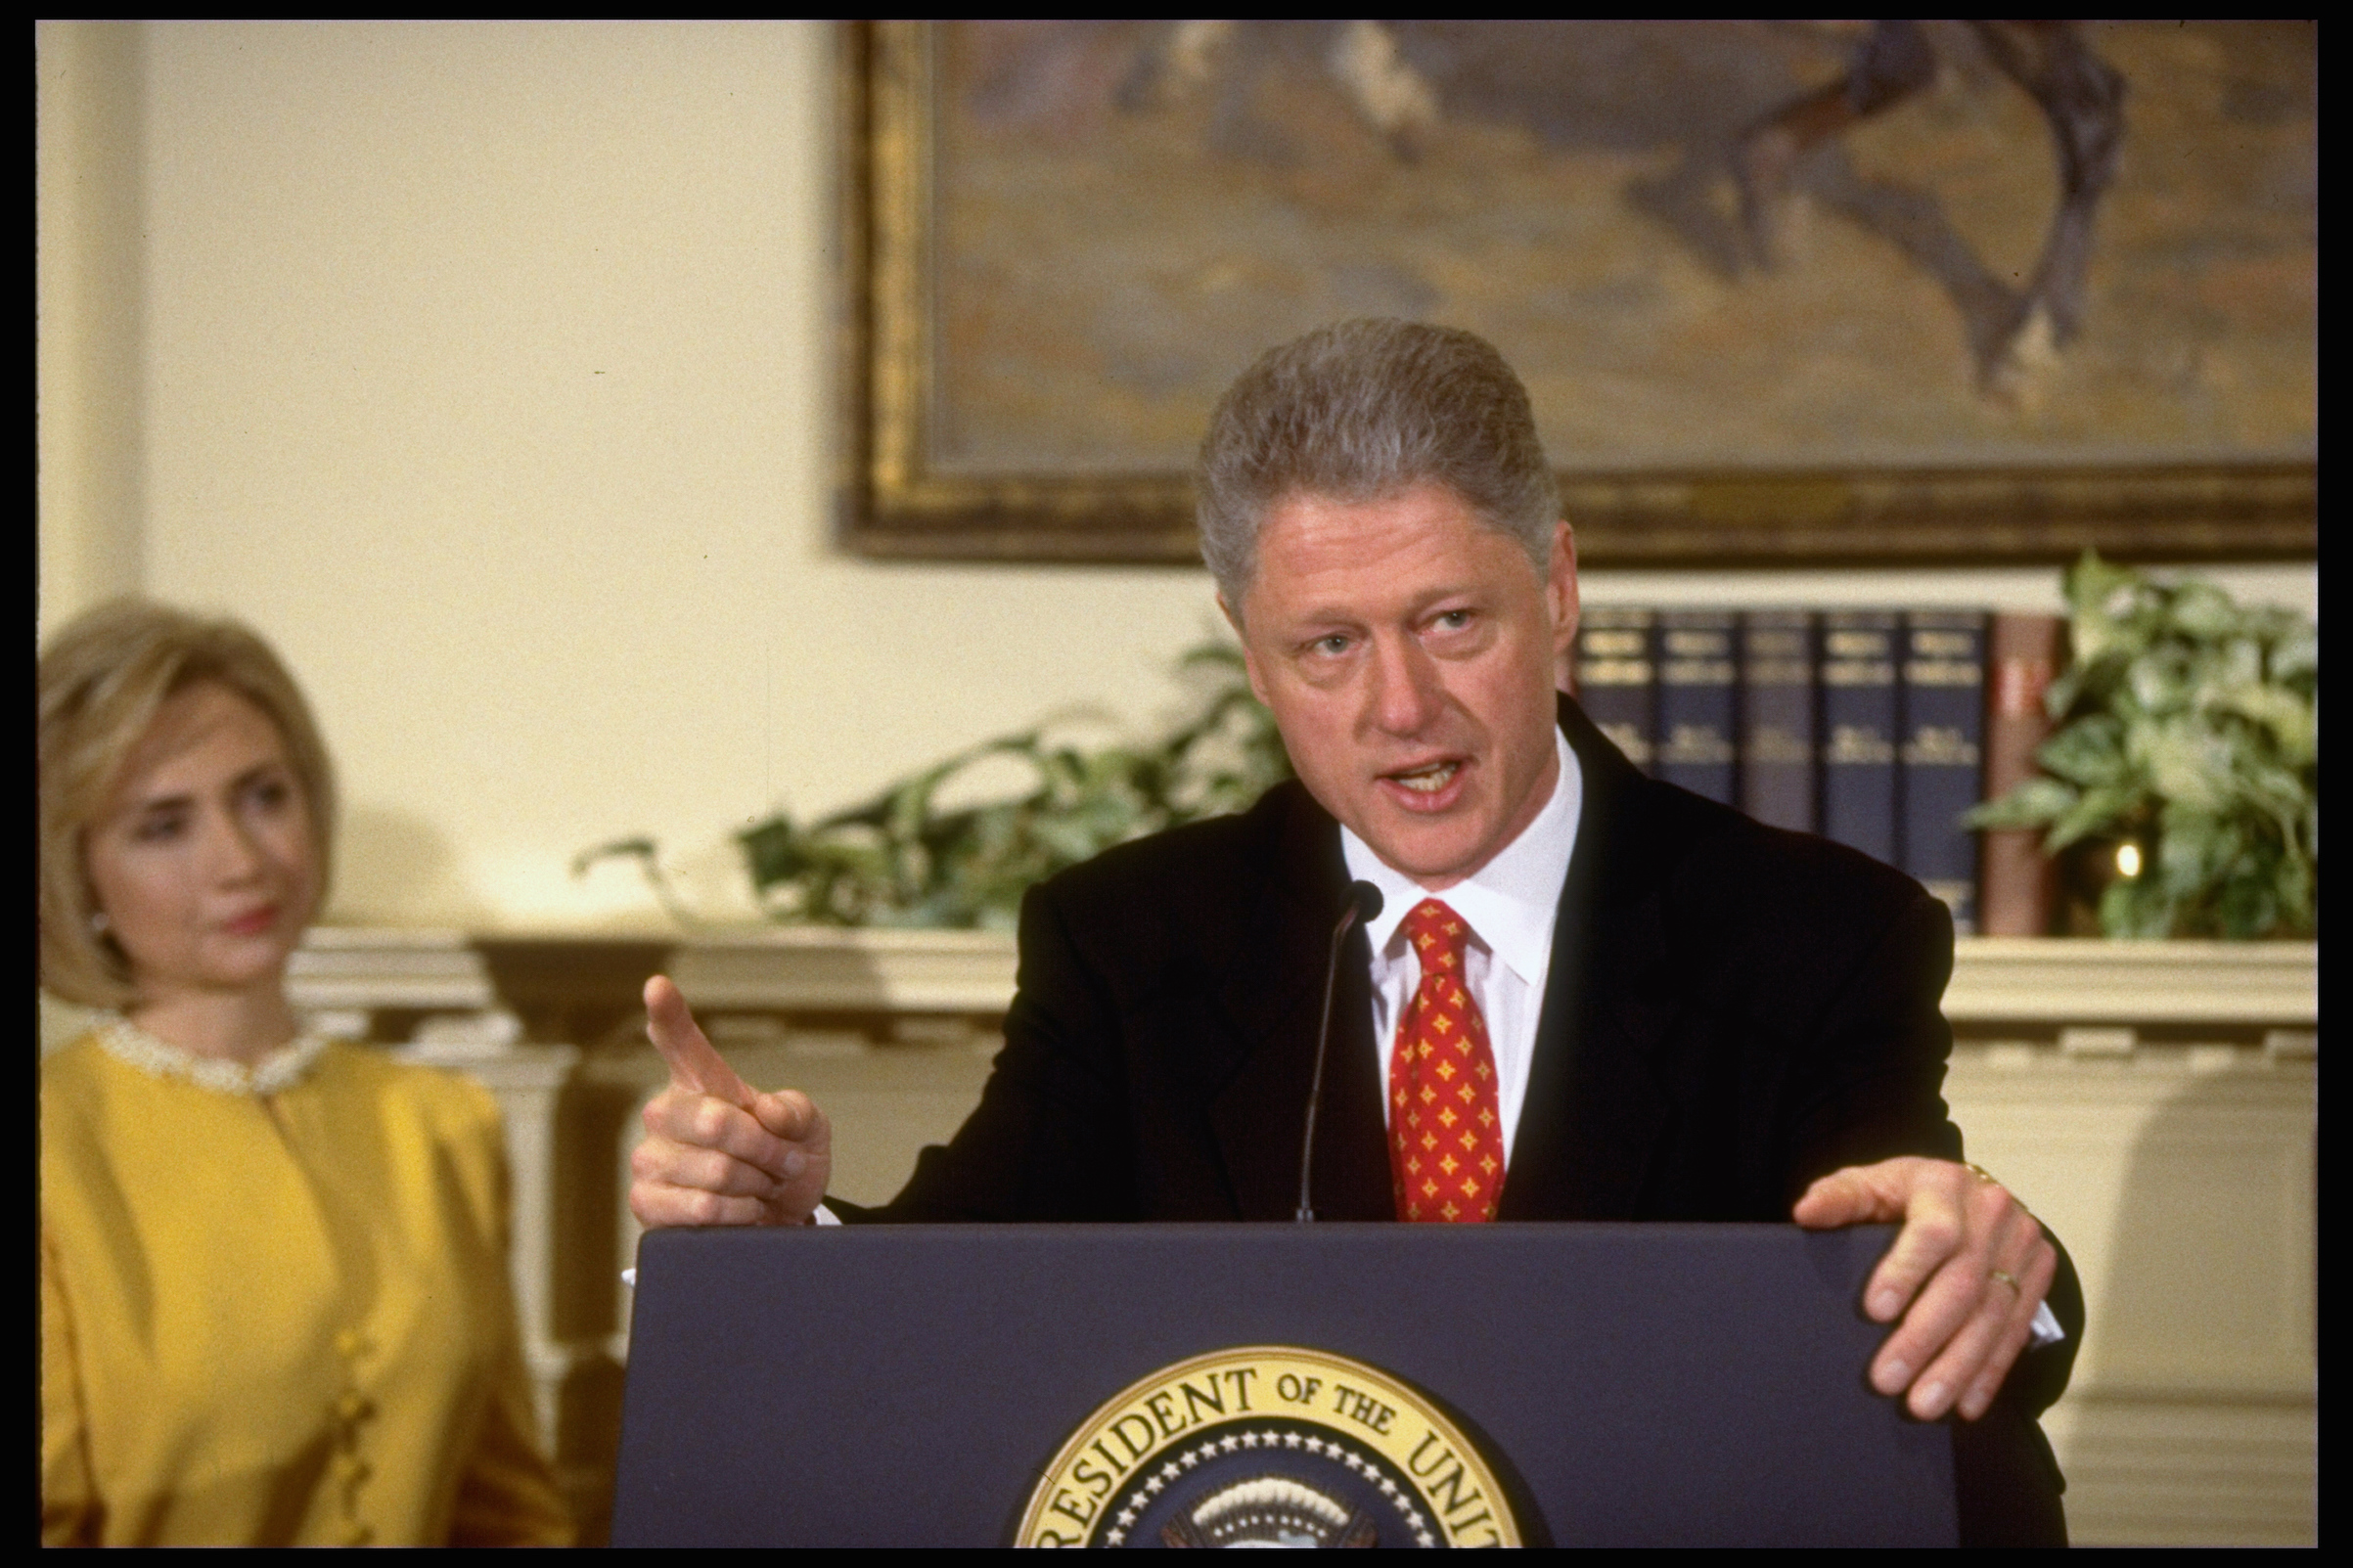 Pres. Bill Clinton emphatically denying having an affair with former White House intern Monica Lewinsky, during a White House event with First Lady Hillary Rodham Clinton at his side, on Jan. 26, 1998